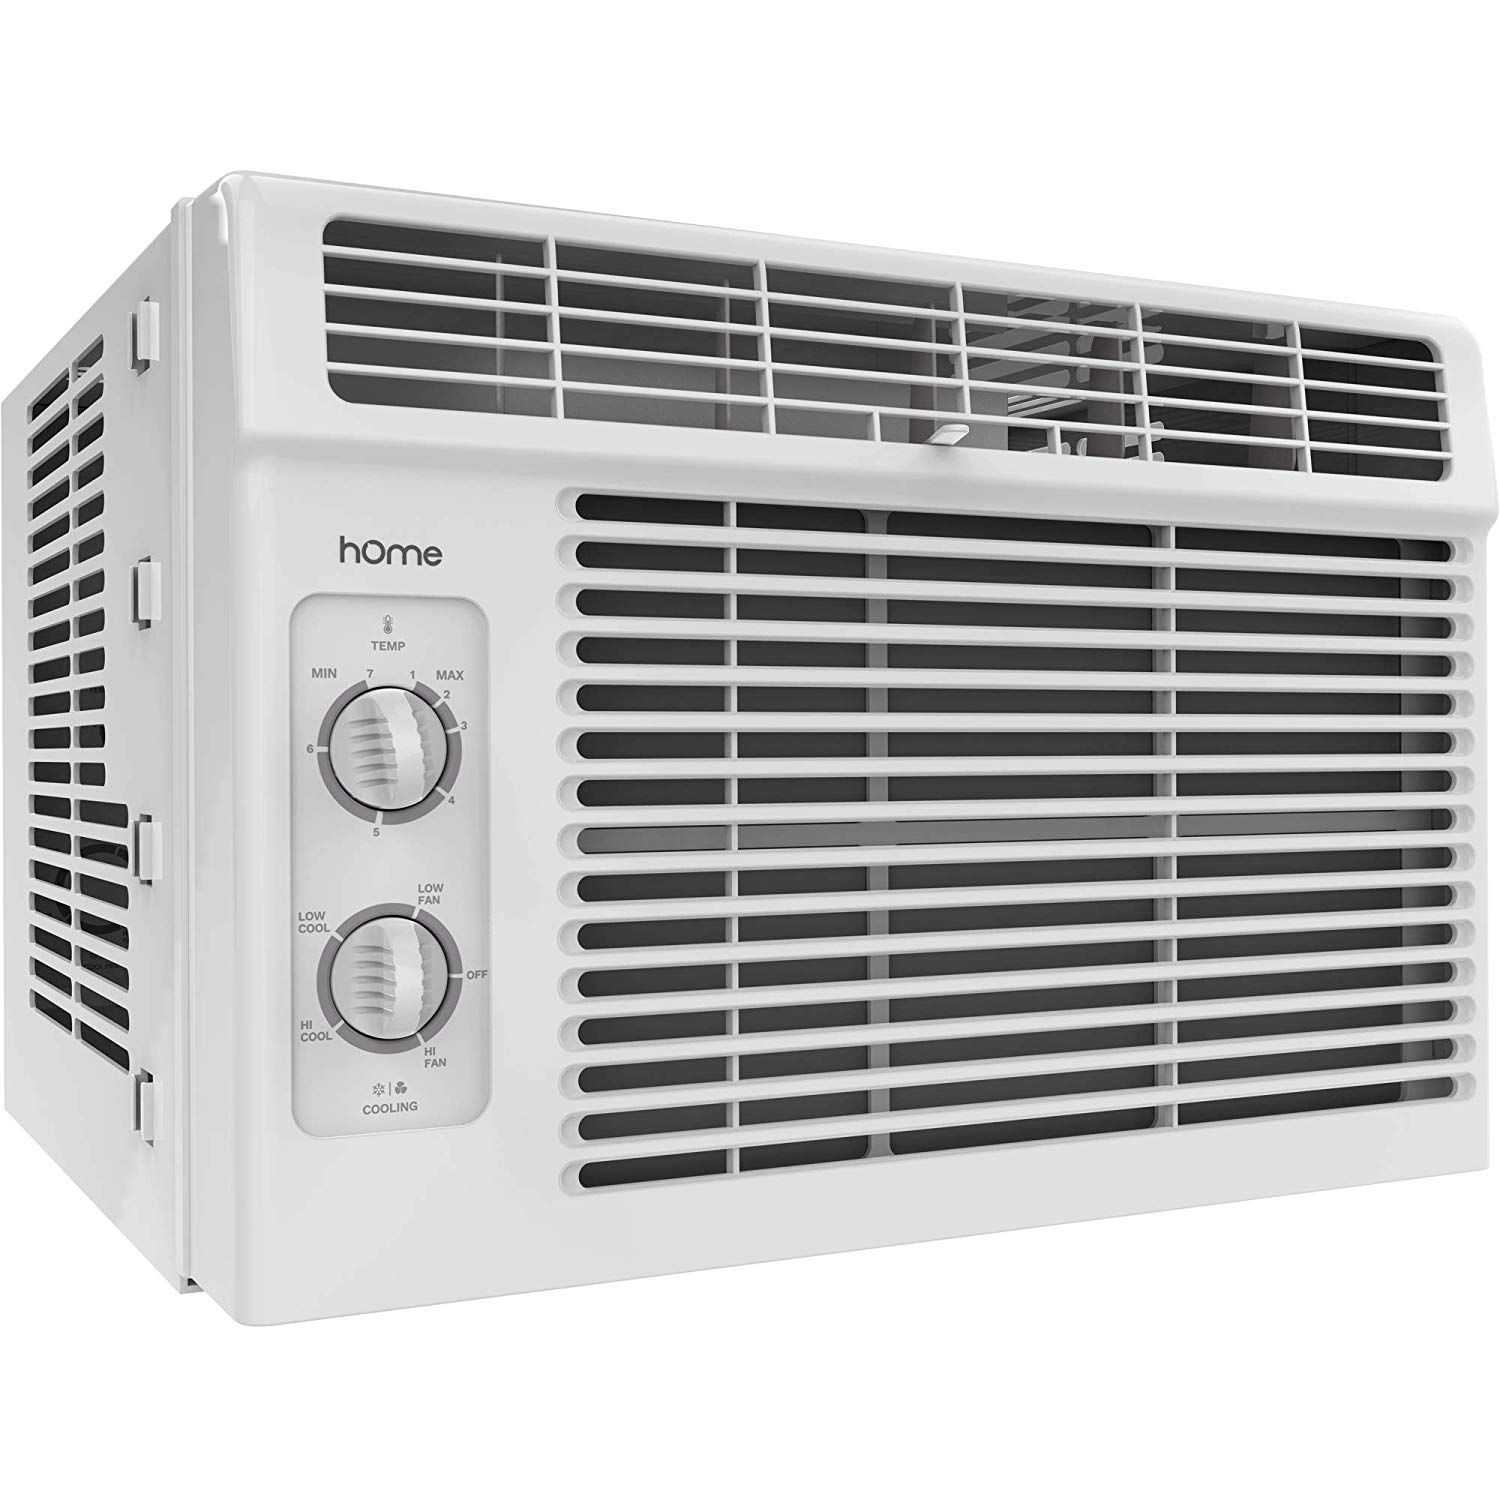 Simple Changes That Can Significantly Help Reduce Home Energy Costs Window Air Conditioner Small Window Air Conditioner Quiet Window Air Conditioner